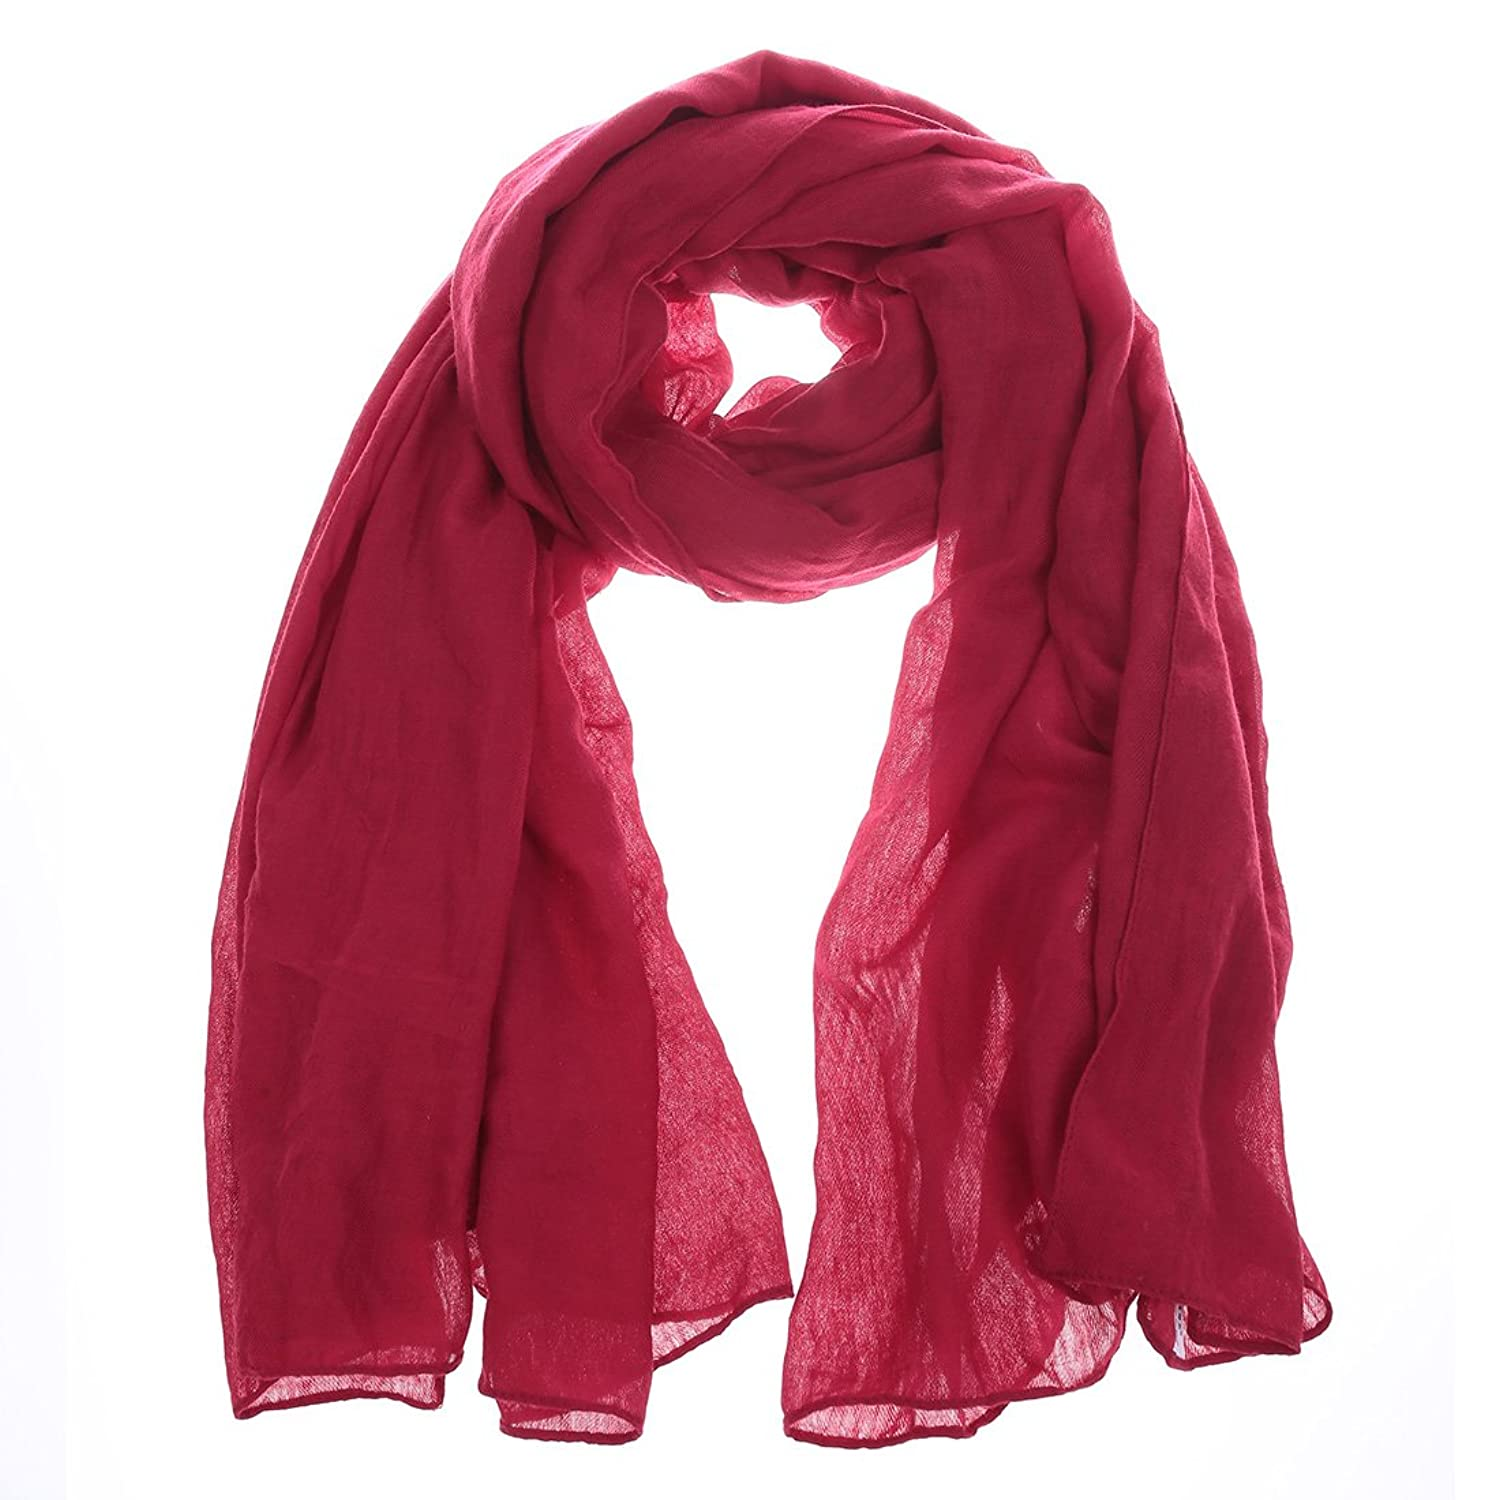 Generic Women's Solid Color Scarf Lady Soft Neckerchief Fashion Beach Scarves